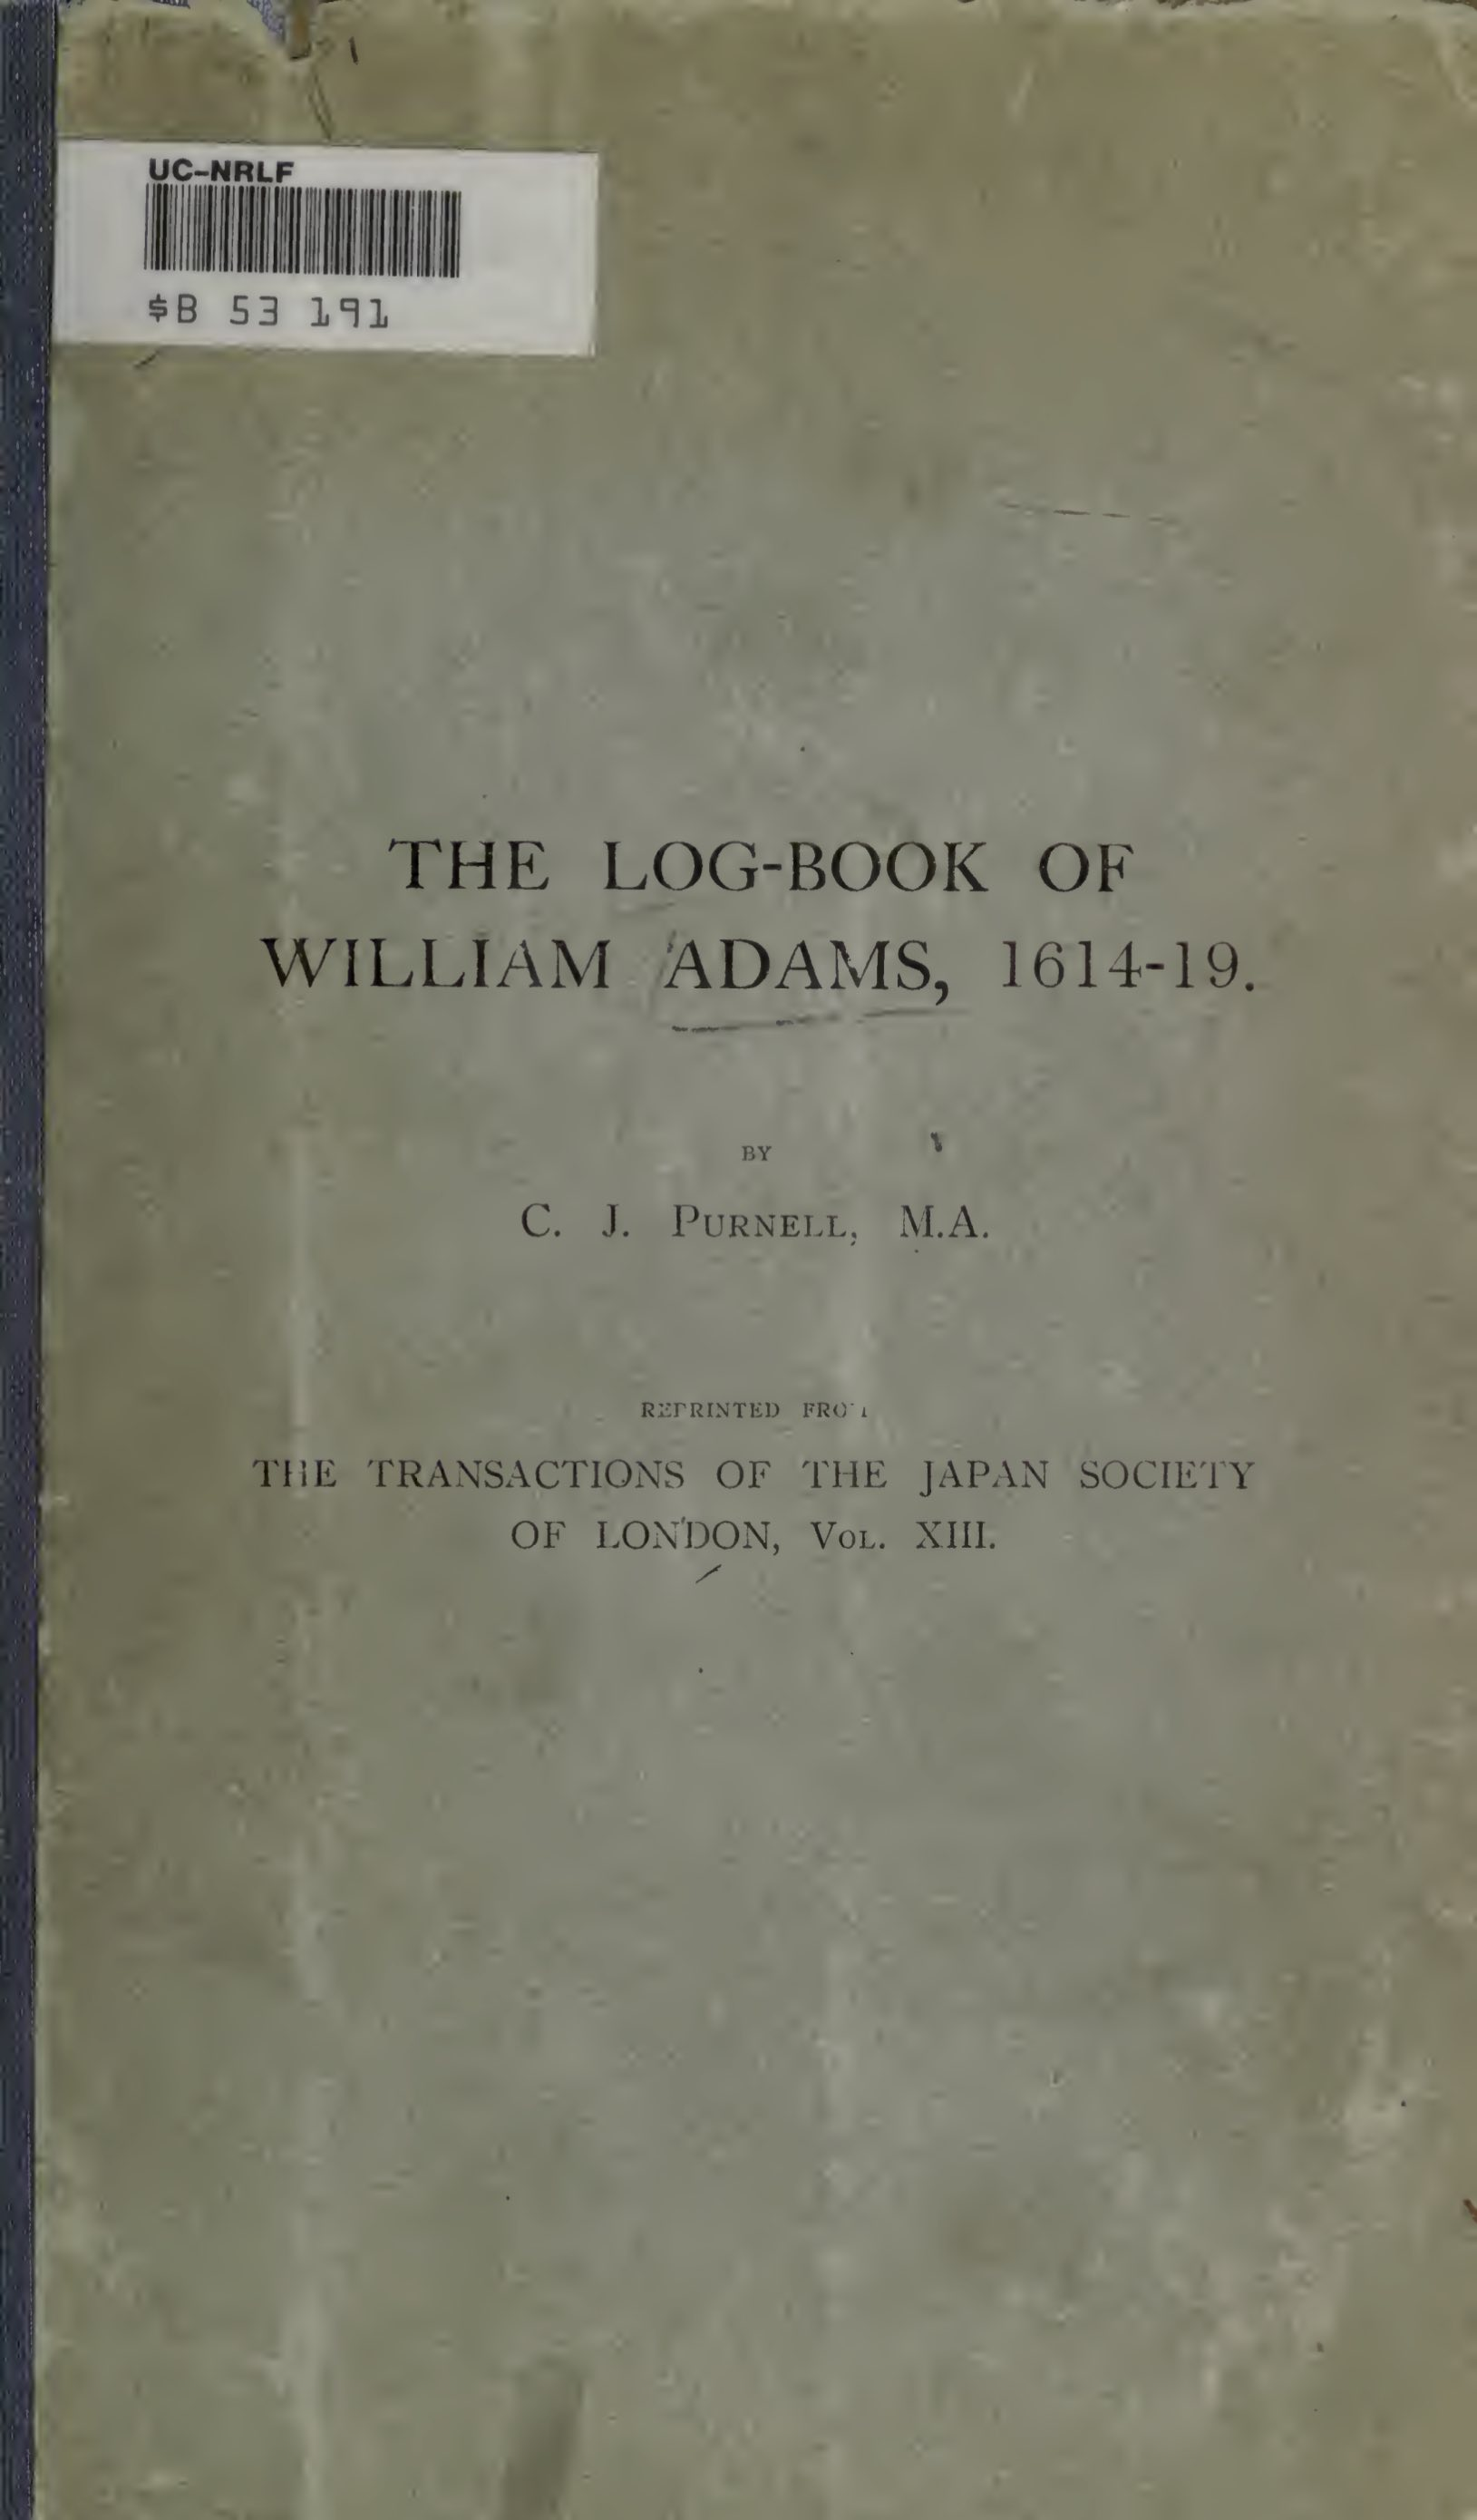 The Log-Book of William Adams